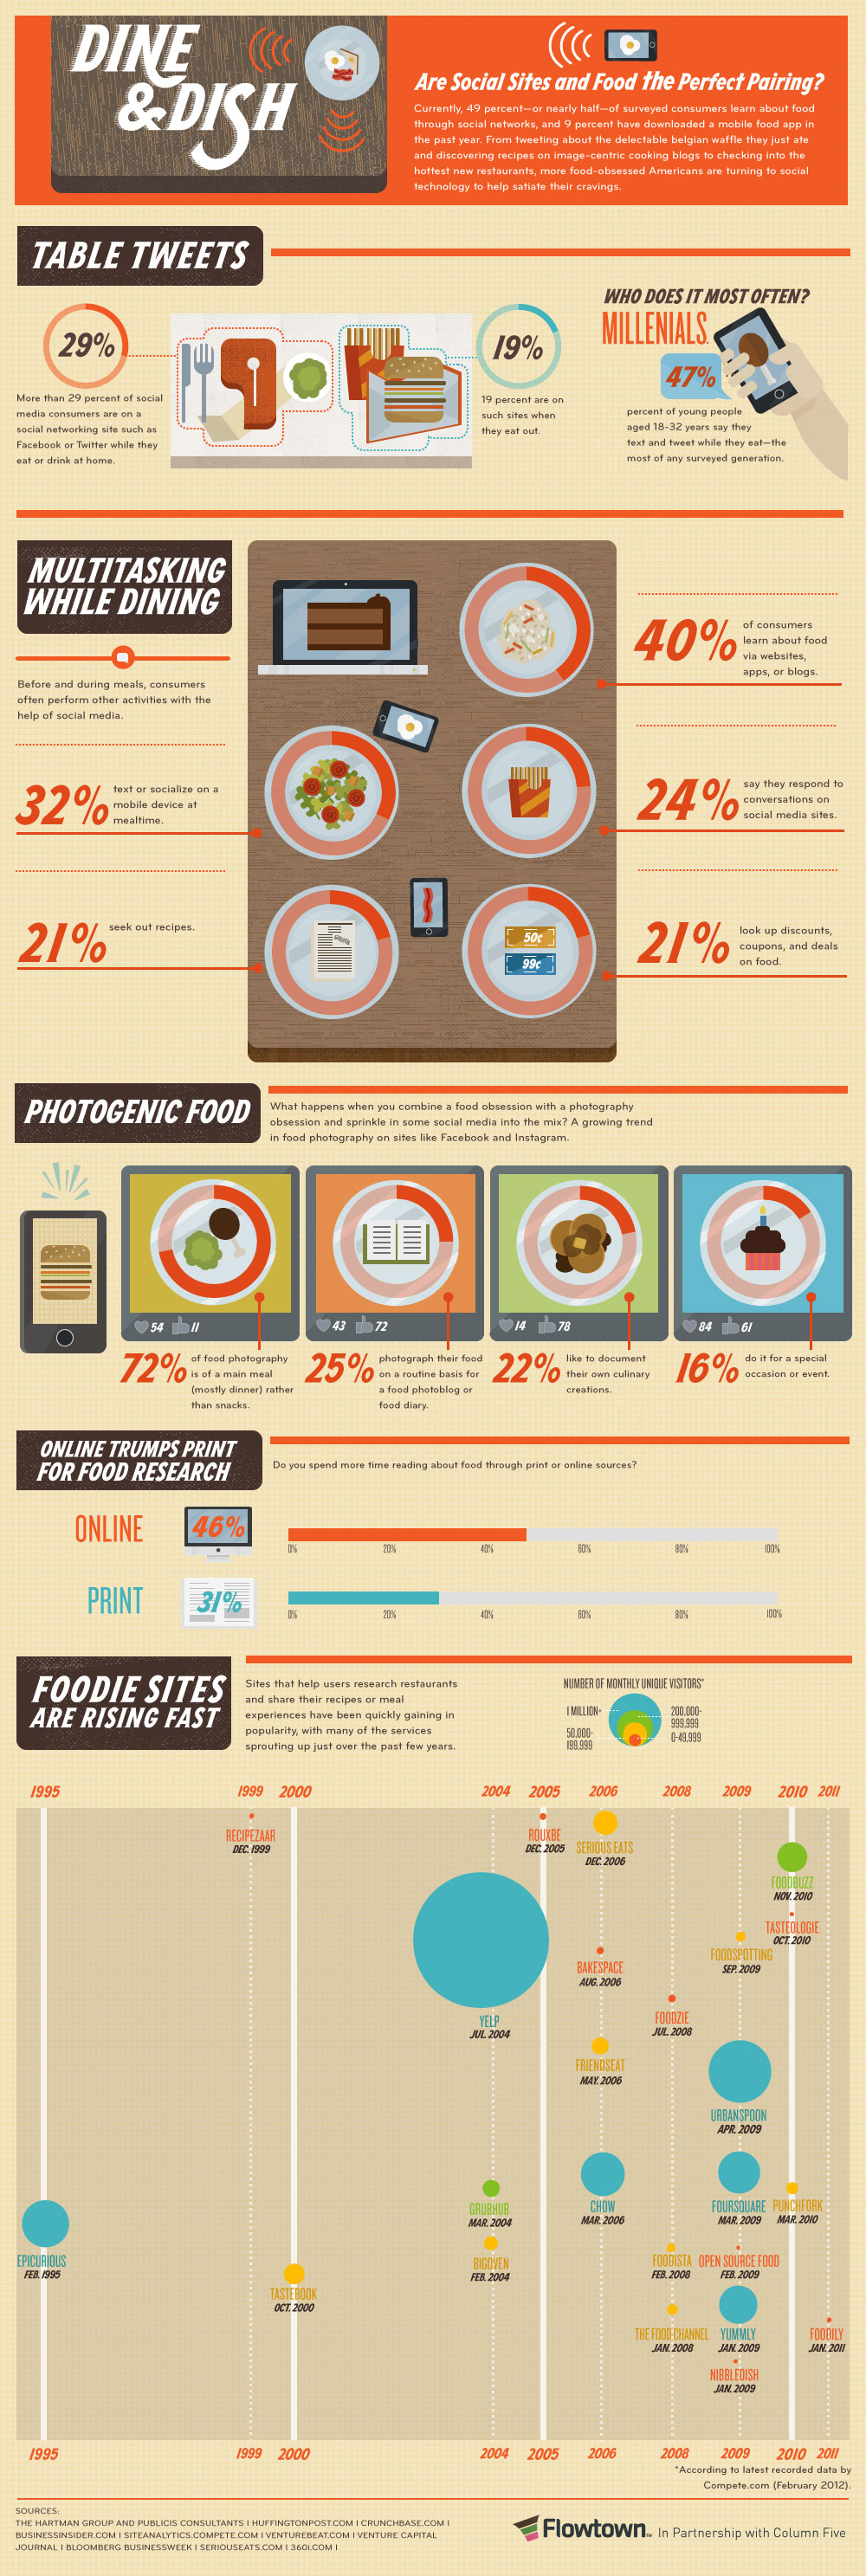 Social Media & Food: A Match Made In Heaven [Infographic]